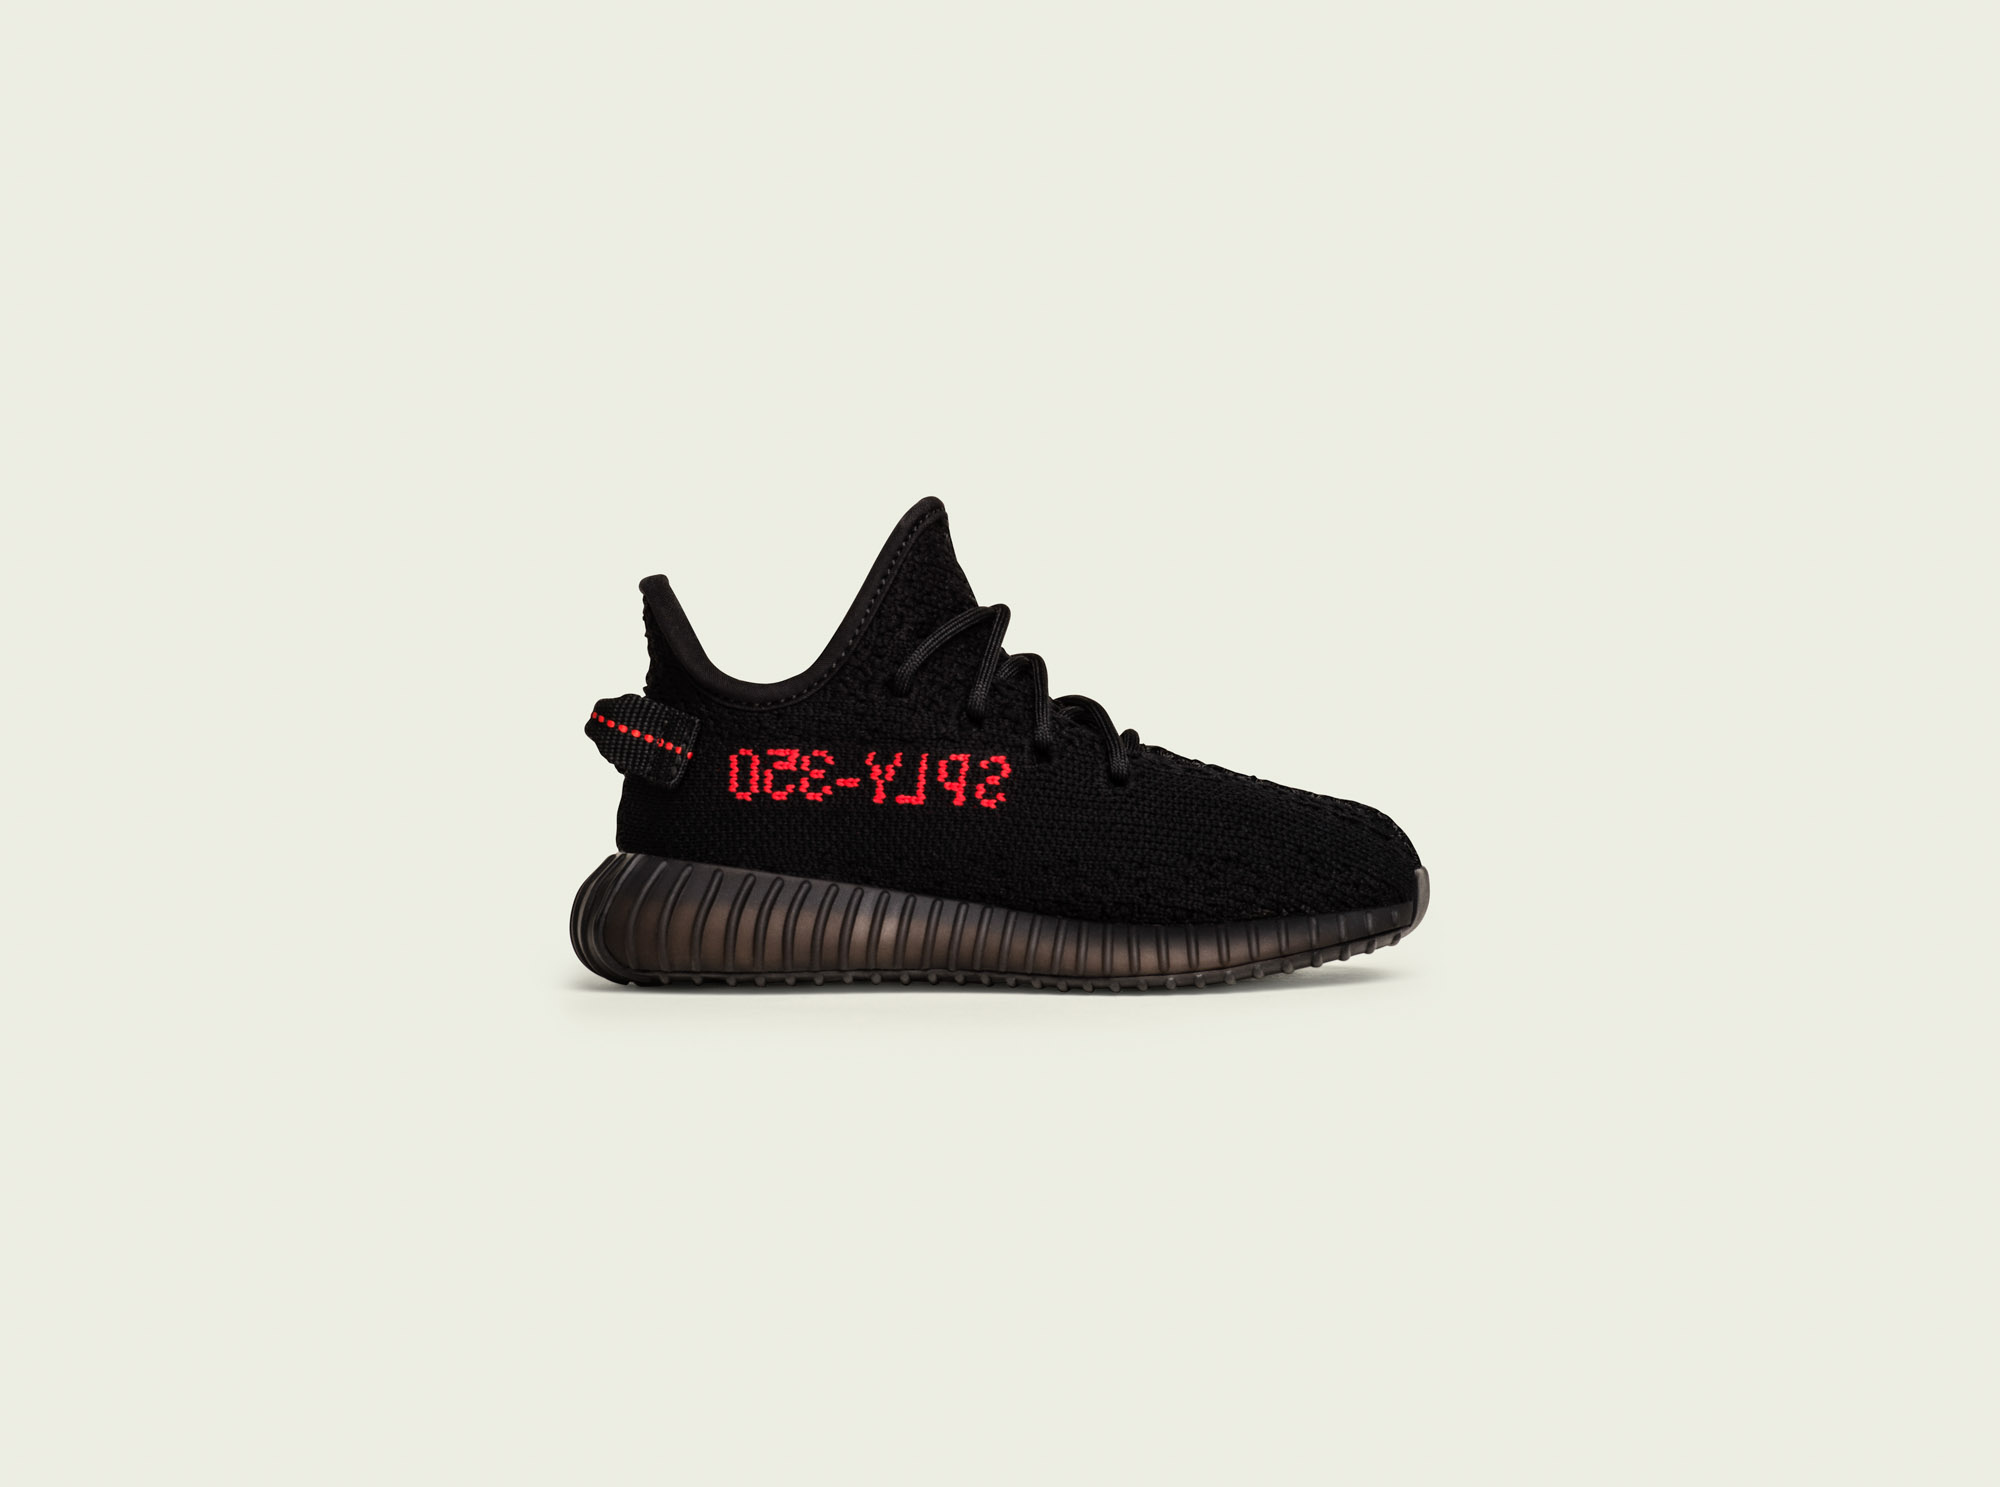 Buy Top Fashion 'Bred' yeezy boost 350 v2 'black / red' canada Neon